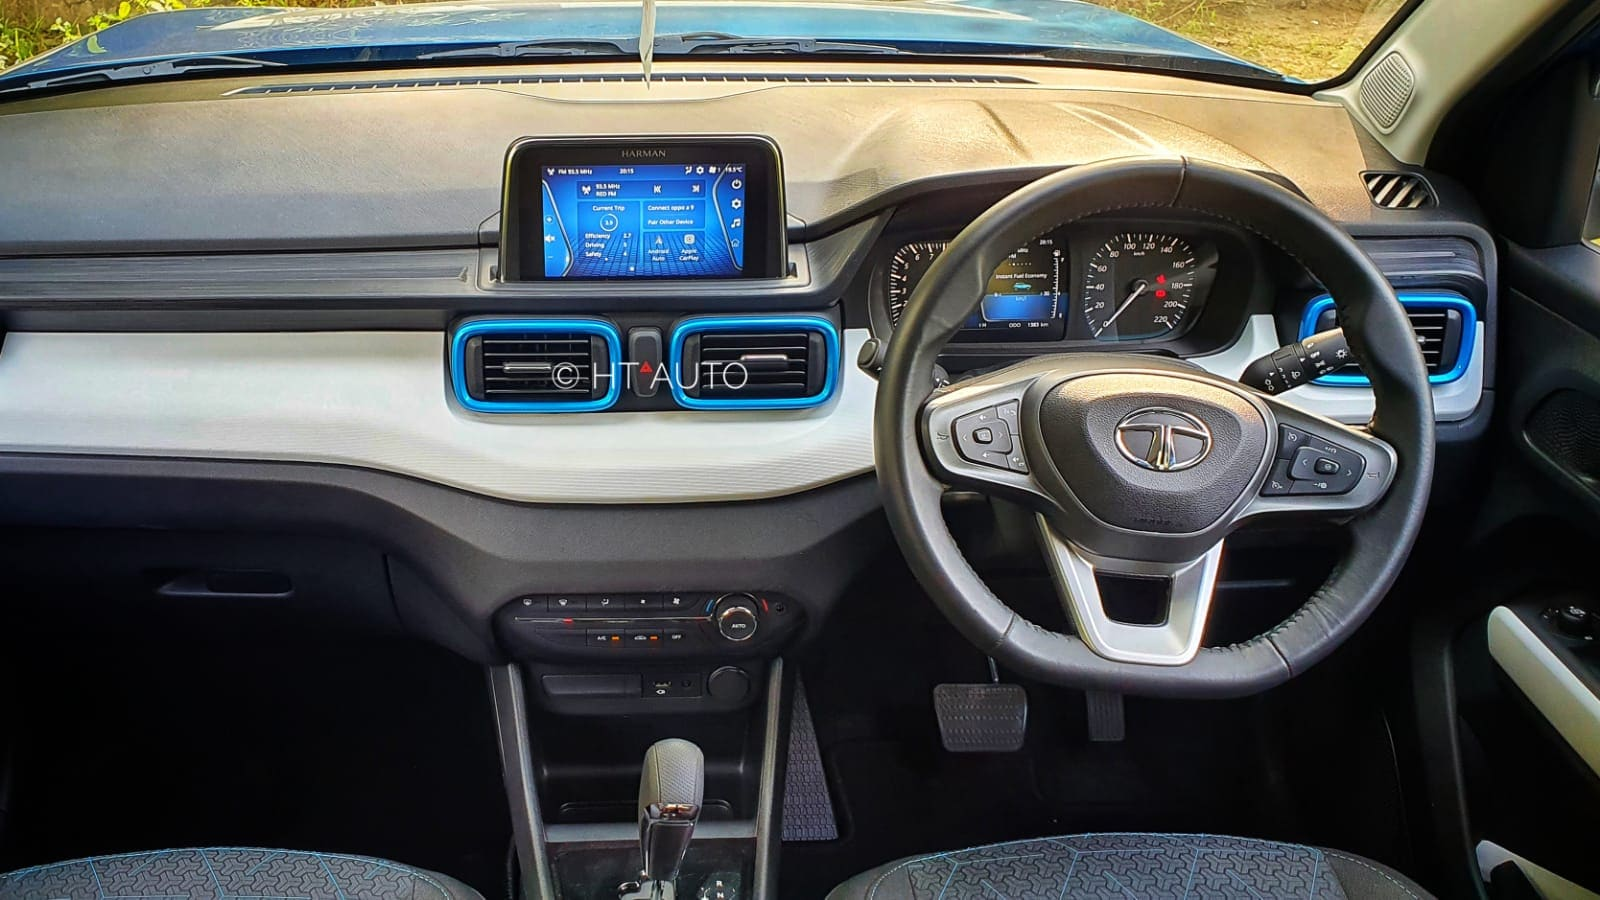 Depending on the variant, the cabin of Tata Punch offers functional features for everyday use such as cooled glovebox, infotainment screen, climate control, auto-folding ORVMs, rain-sensing wipers, automatic head lights, four speakers with two tweeters, among other additions.